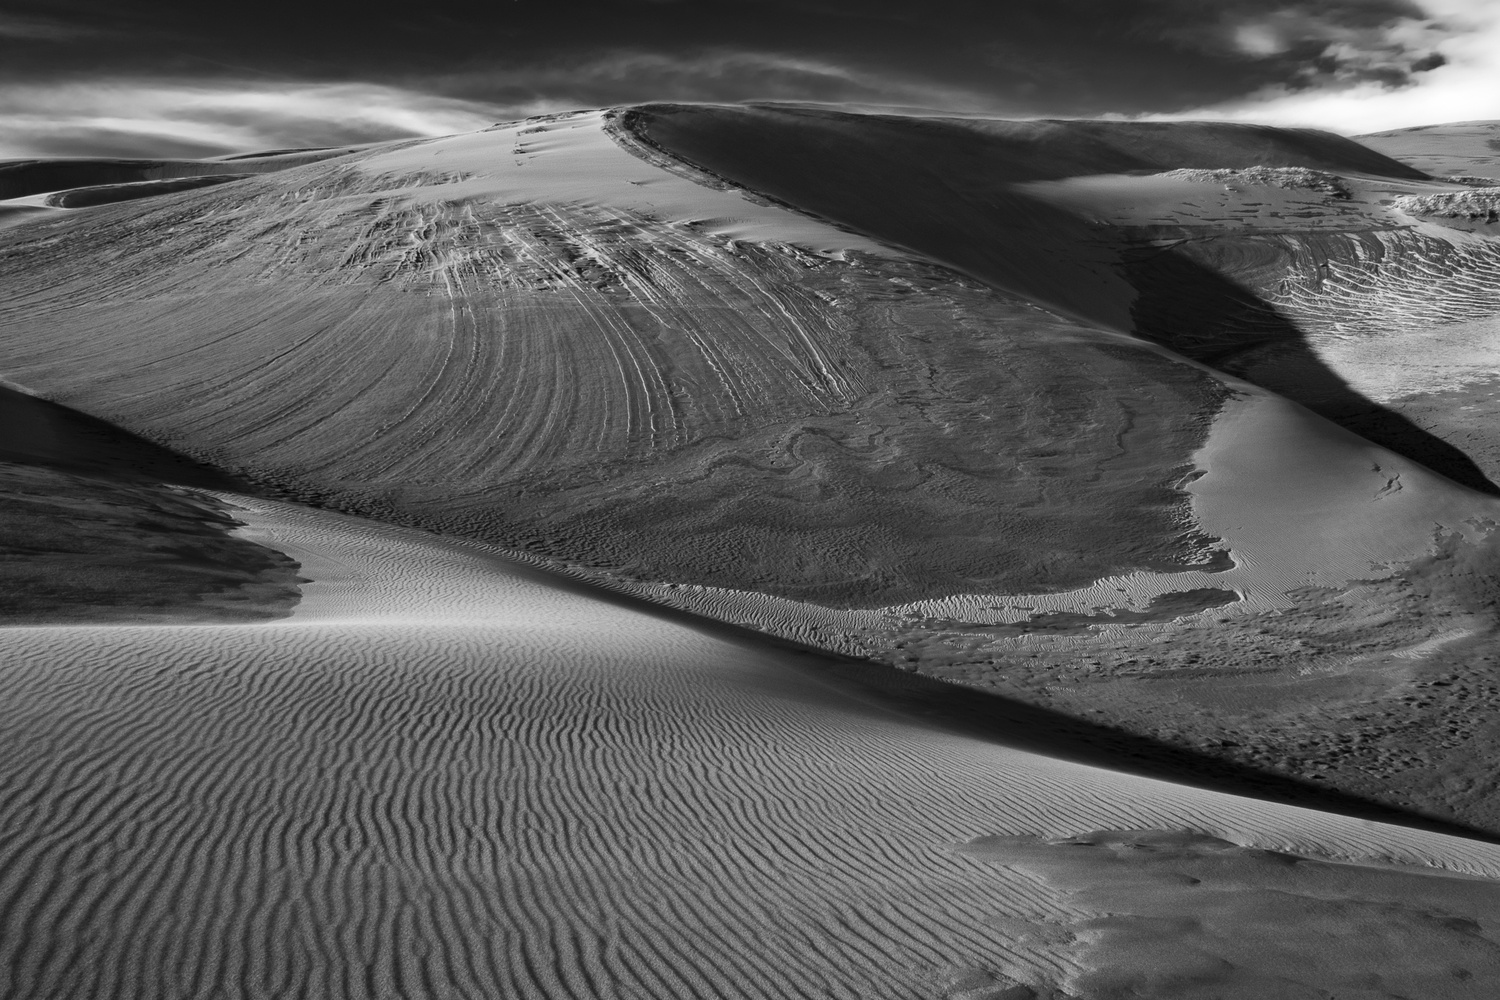 Dunes, 1 by Moishe Lettvin